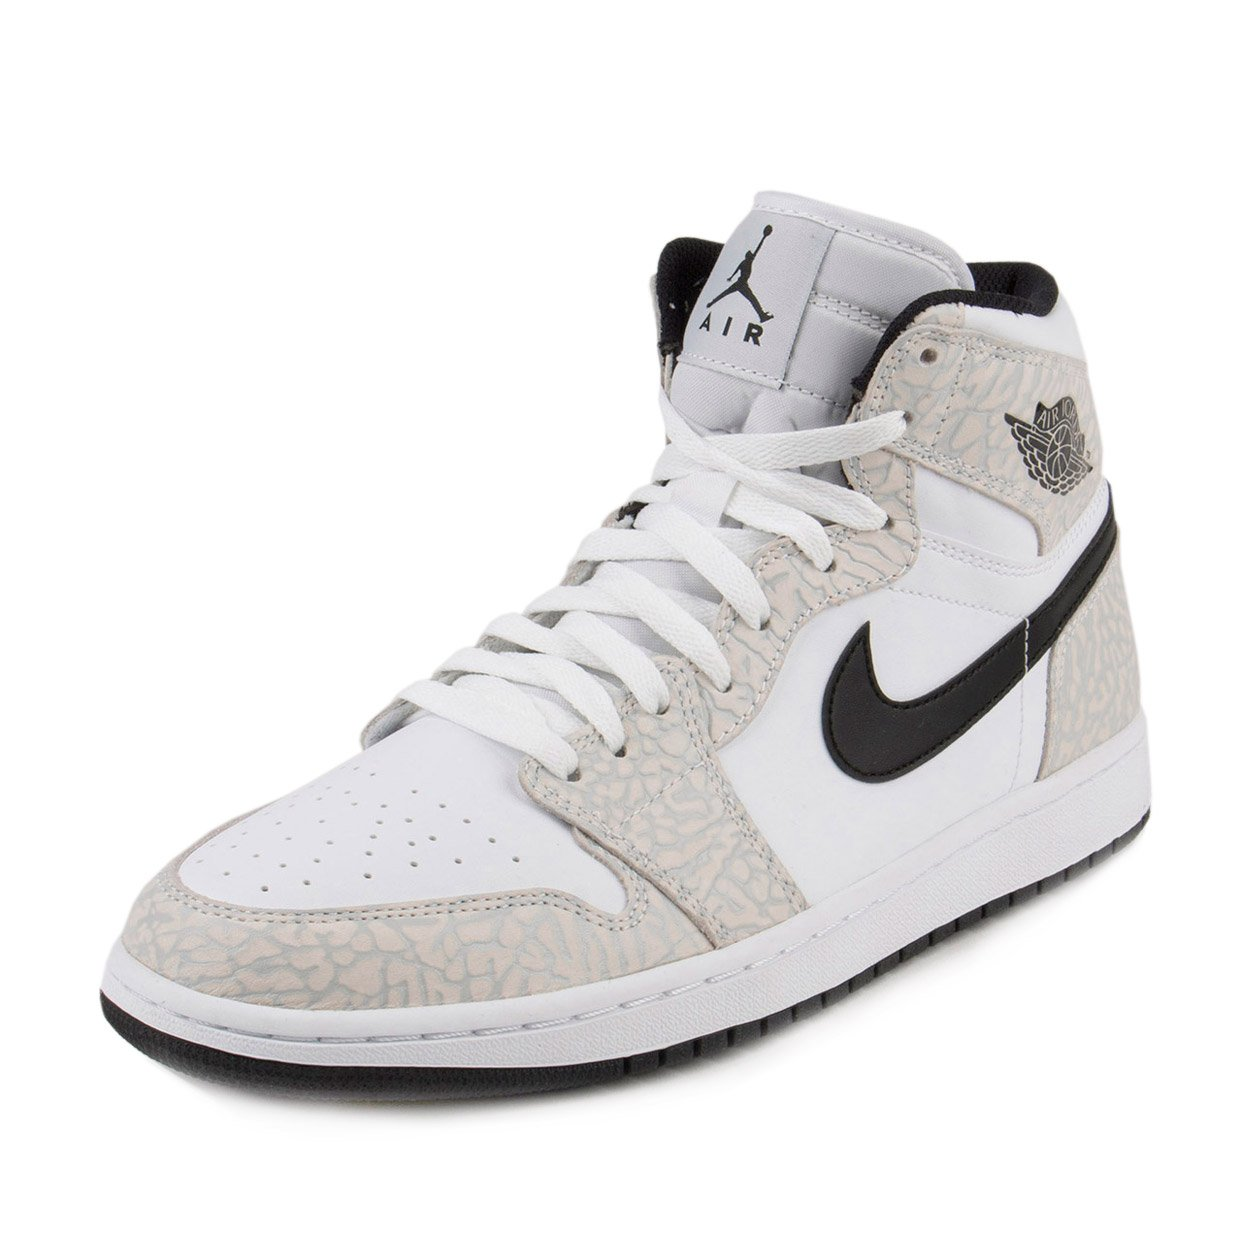 Nike Men's Air Jordan 1 Retro High White Pure Platinum